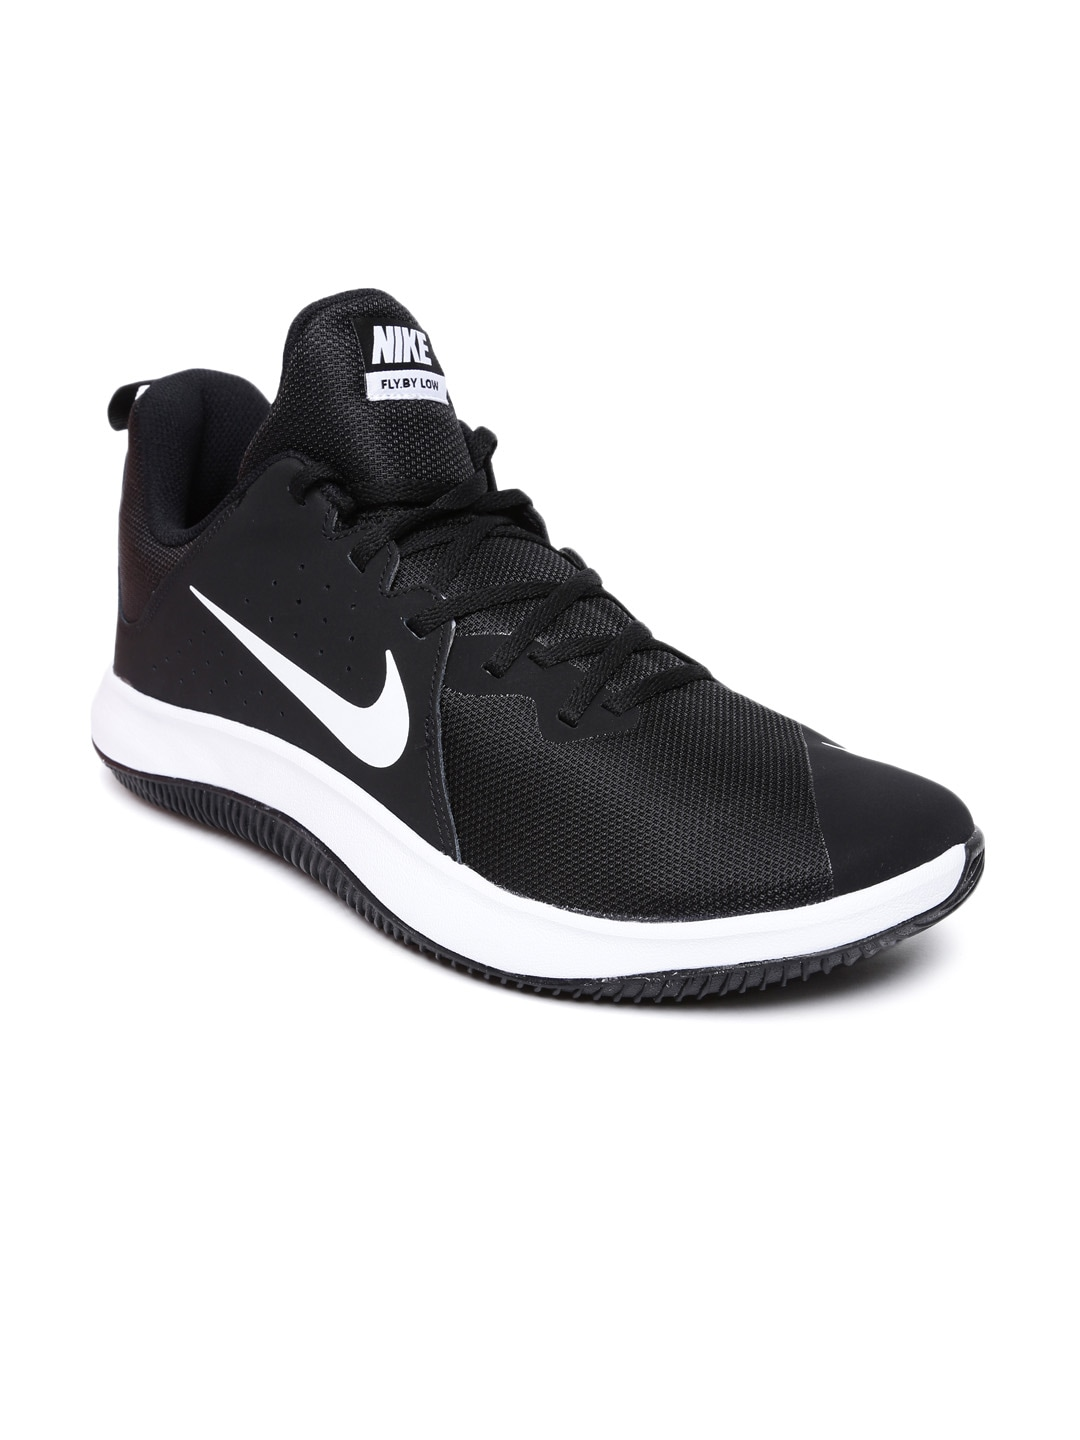 timeless design ec976 3c1fd Nike Shoes - Buy Nike Shoes for Men, Women   Kids Online   Myntra